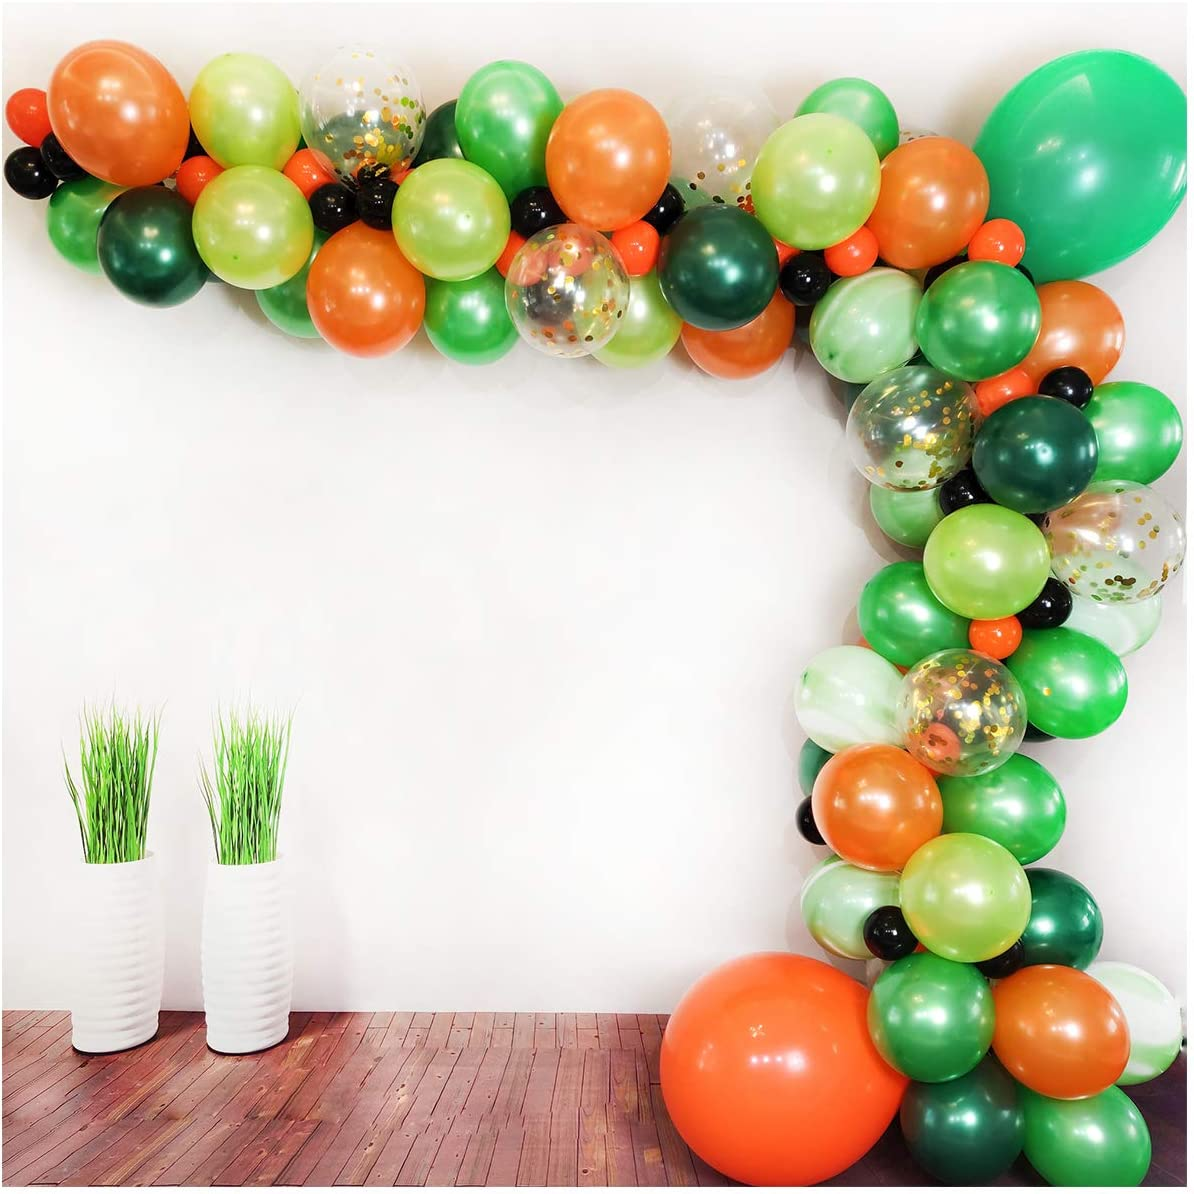 Luvier Green And Orange Latex Balloon Garland Arch Kit For Jungle/Dinosaur Themed Party,112pcs Marble/Confetti/Large To Small Balloons With Strip/Perfect Backdrop For Boy's Birthday(Orange-Green)